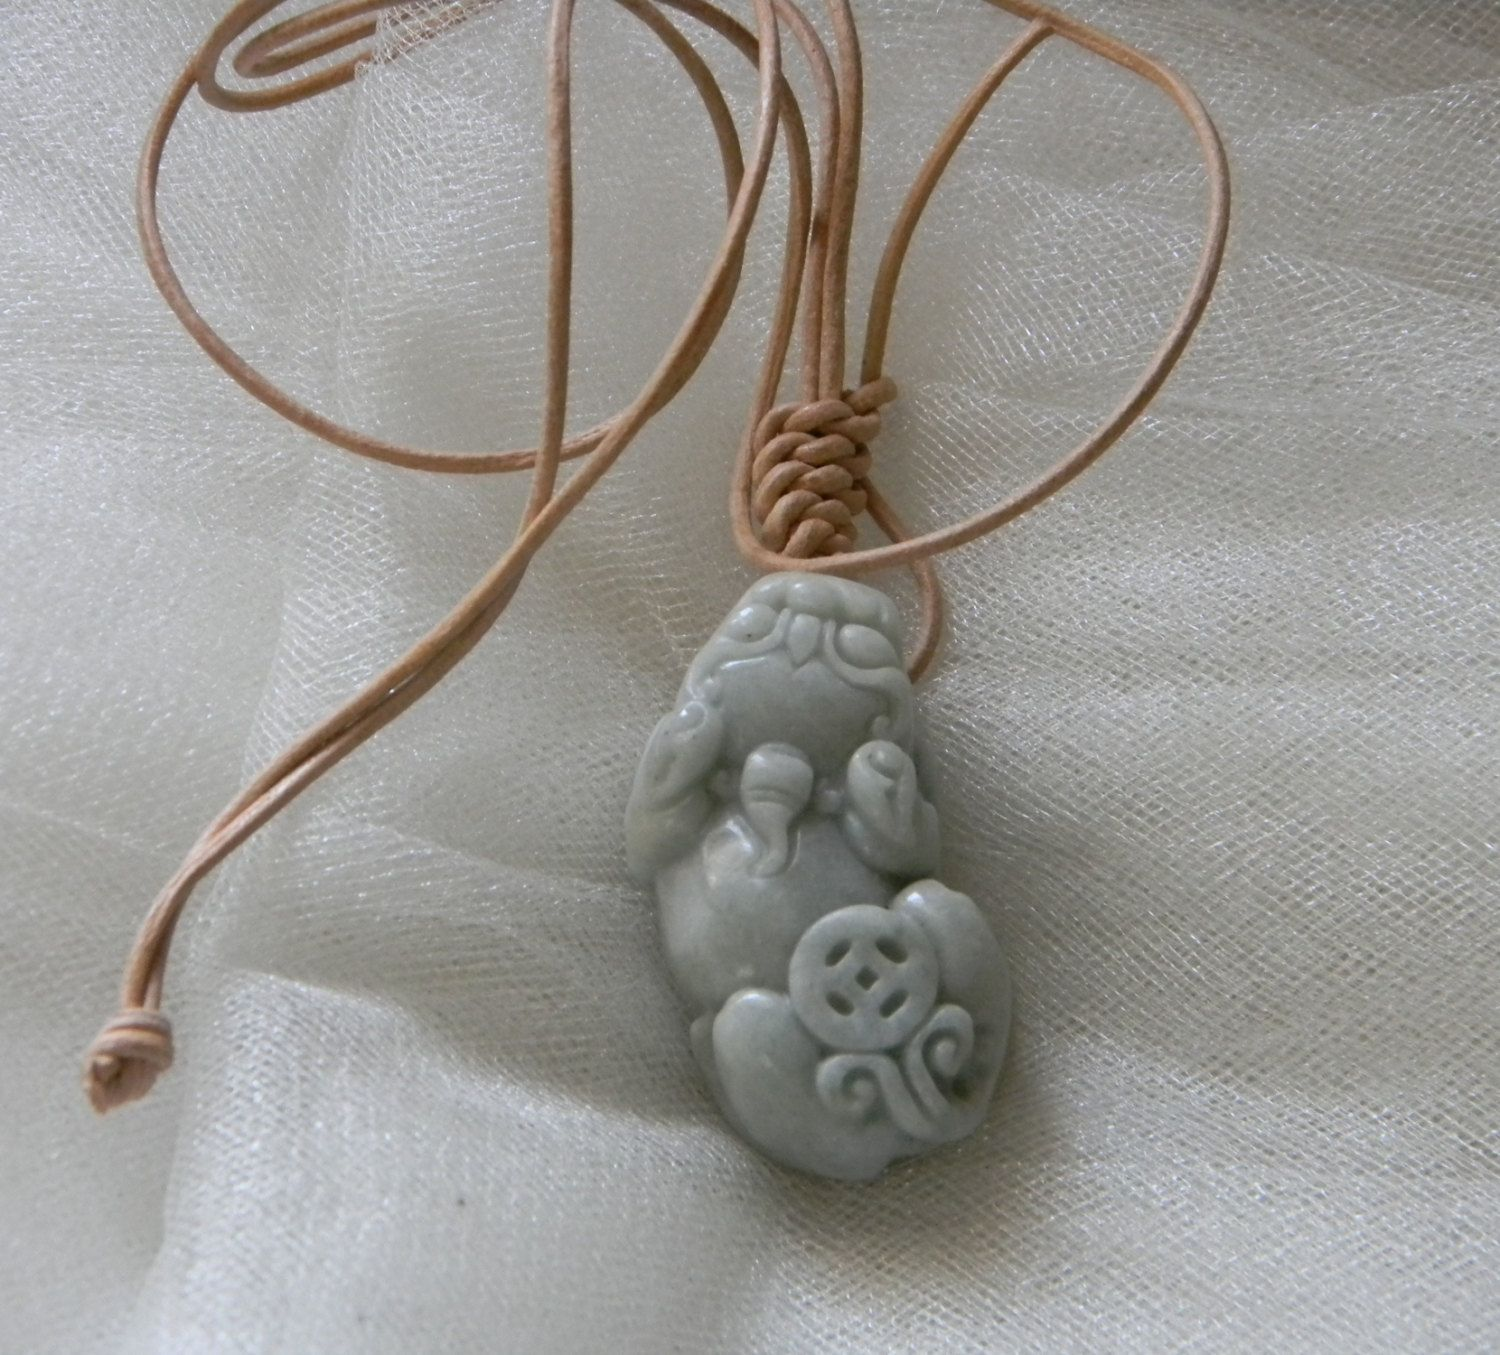 Jade fu dog pendant w leather cord necklace guardian lion jade fu dog pendant w leather cord necklace guardian lion protection talisman shishi aloadofball Images